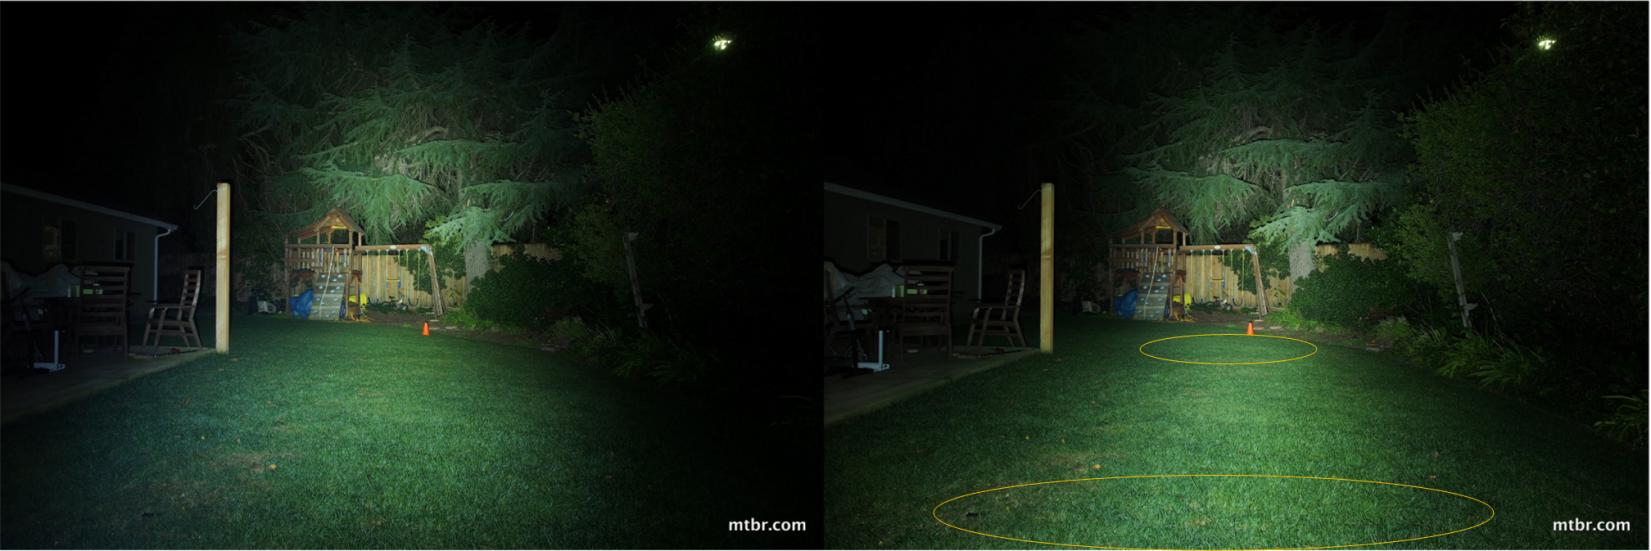 Name:  GlowormX2_vs_DS1300_annotated.jpg Views: 807 Size:  101.4 KB